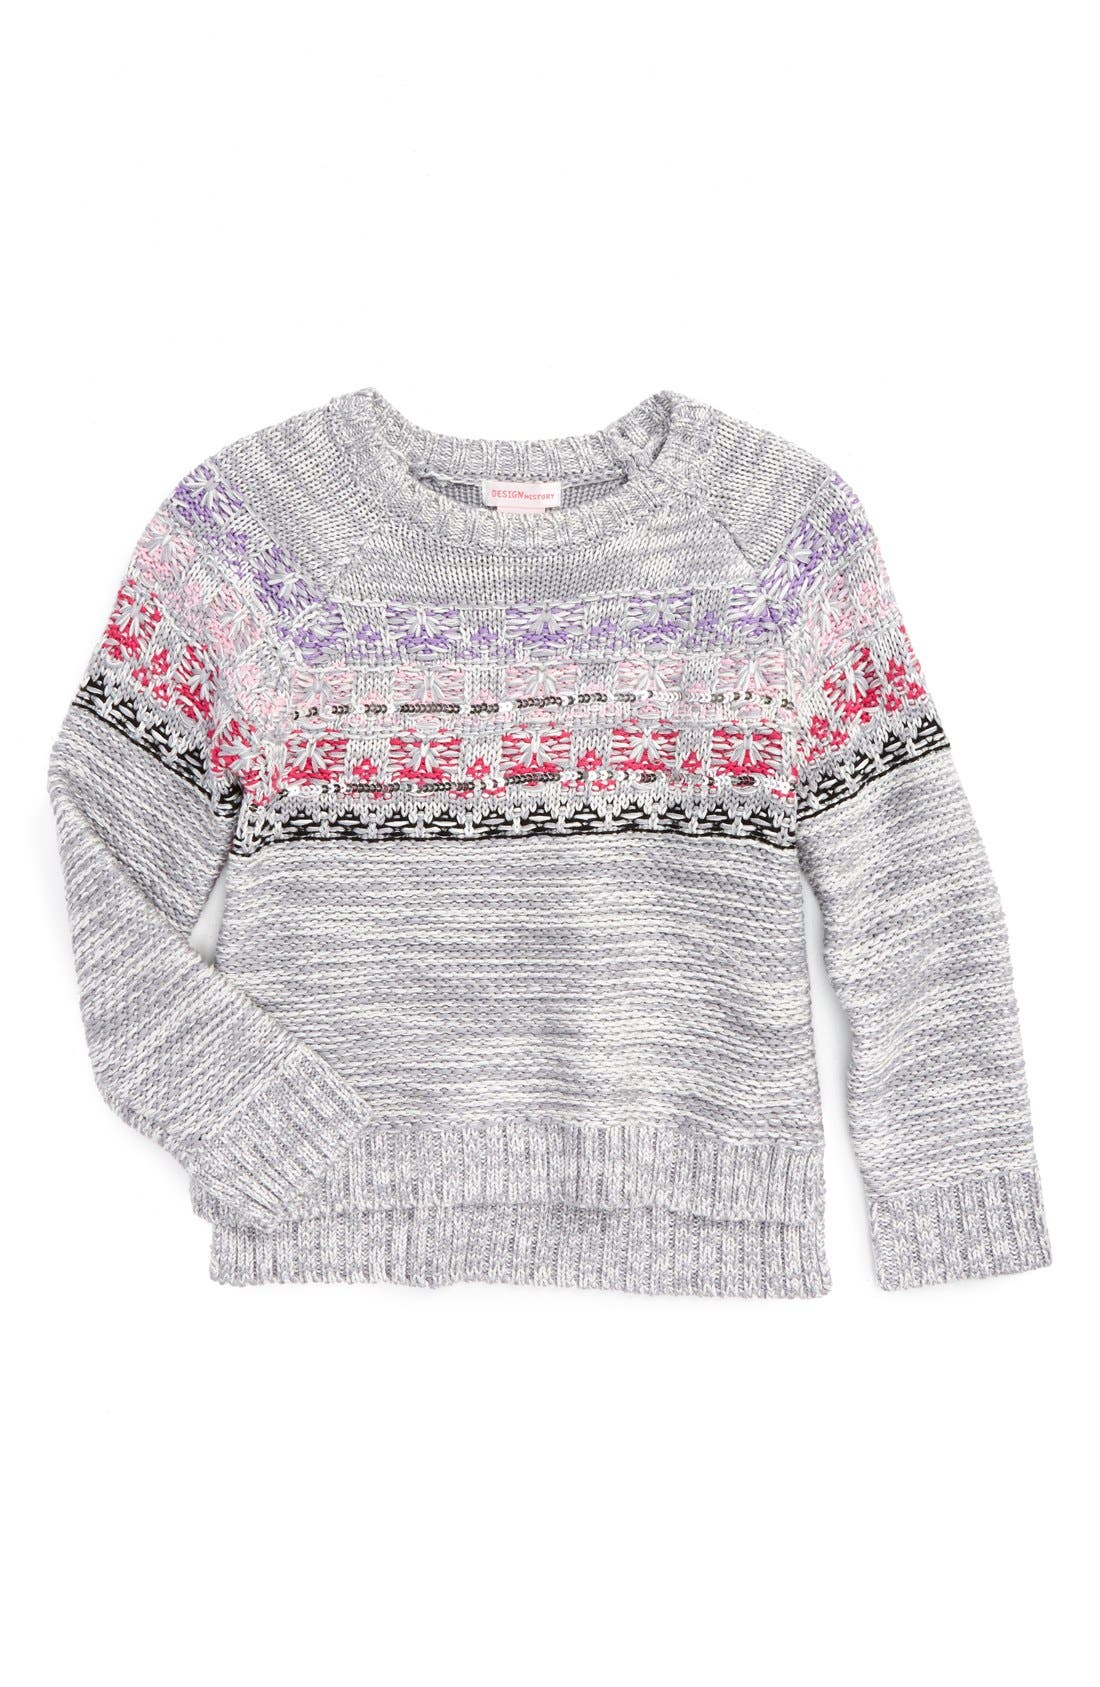 Main Image - Design History Embellished Knit Sweater (Toddler Girls & Little Girls)